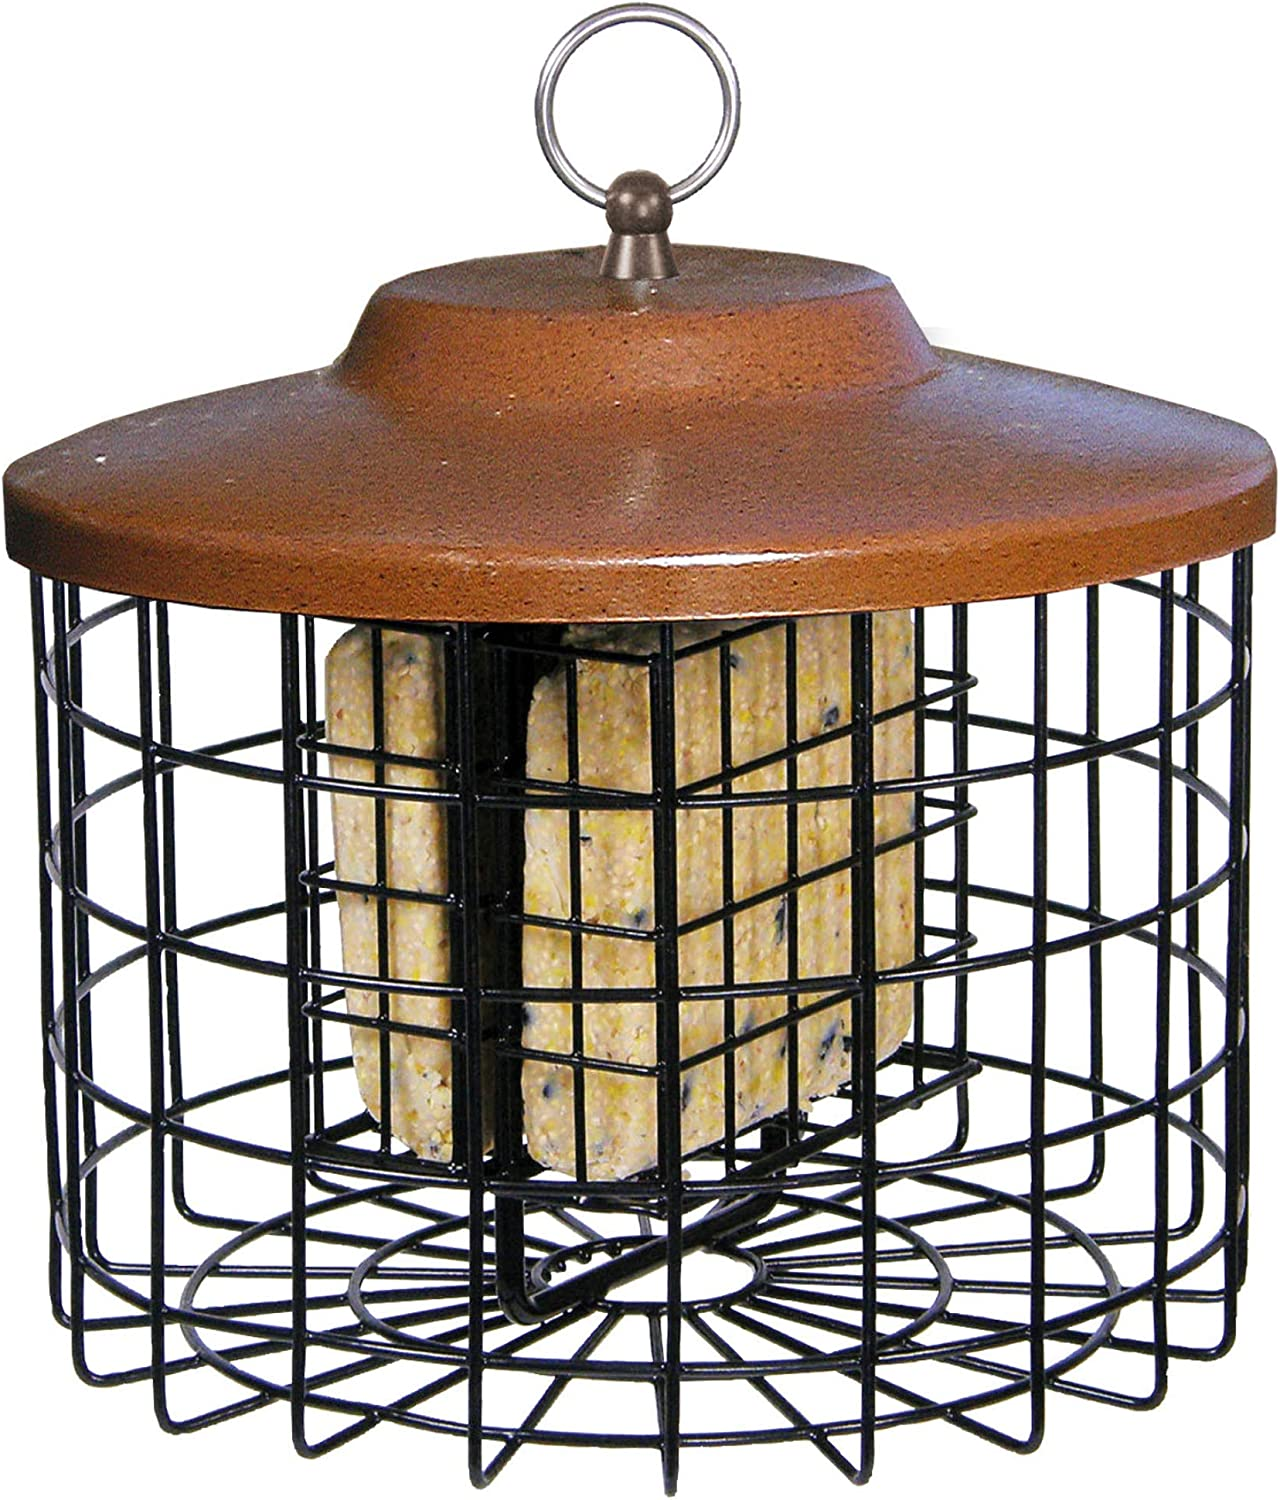 Squirrel-X Squirrel Proof Double Suet Feeder, Cage Bird Feeder, 2 Suet Cake Capacity